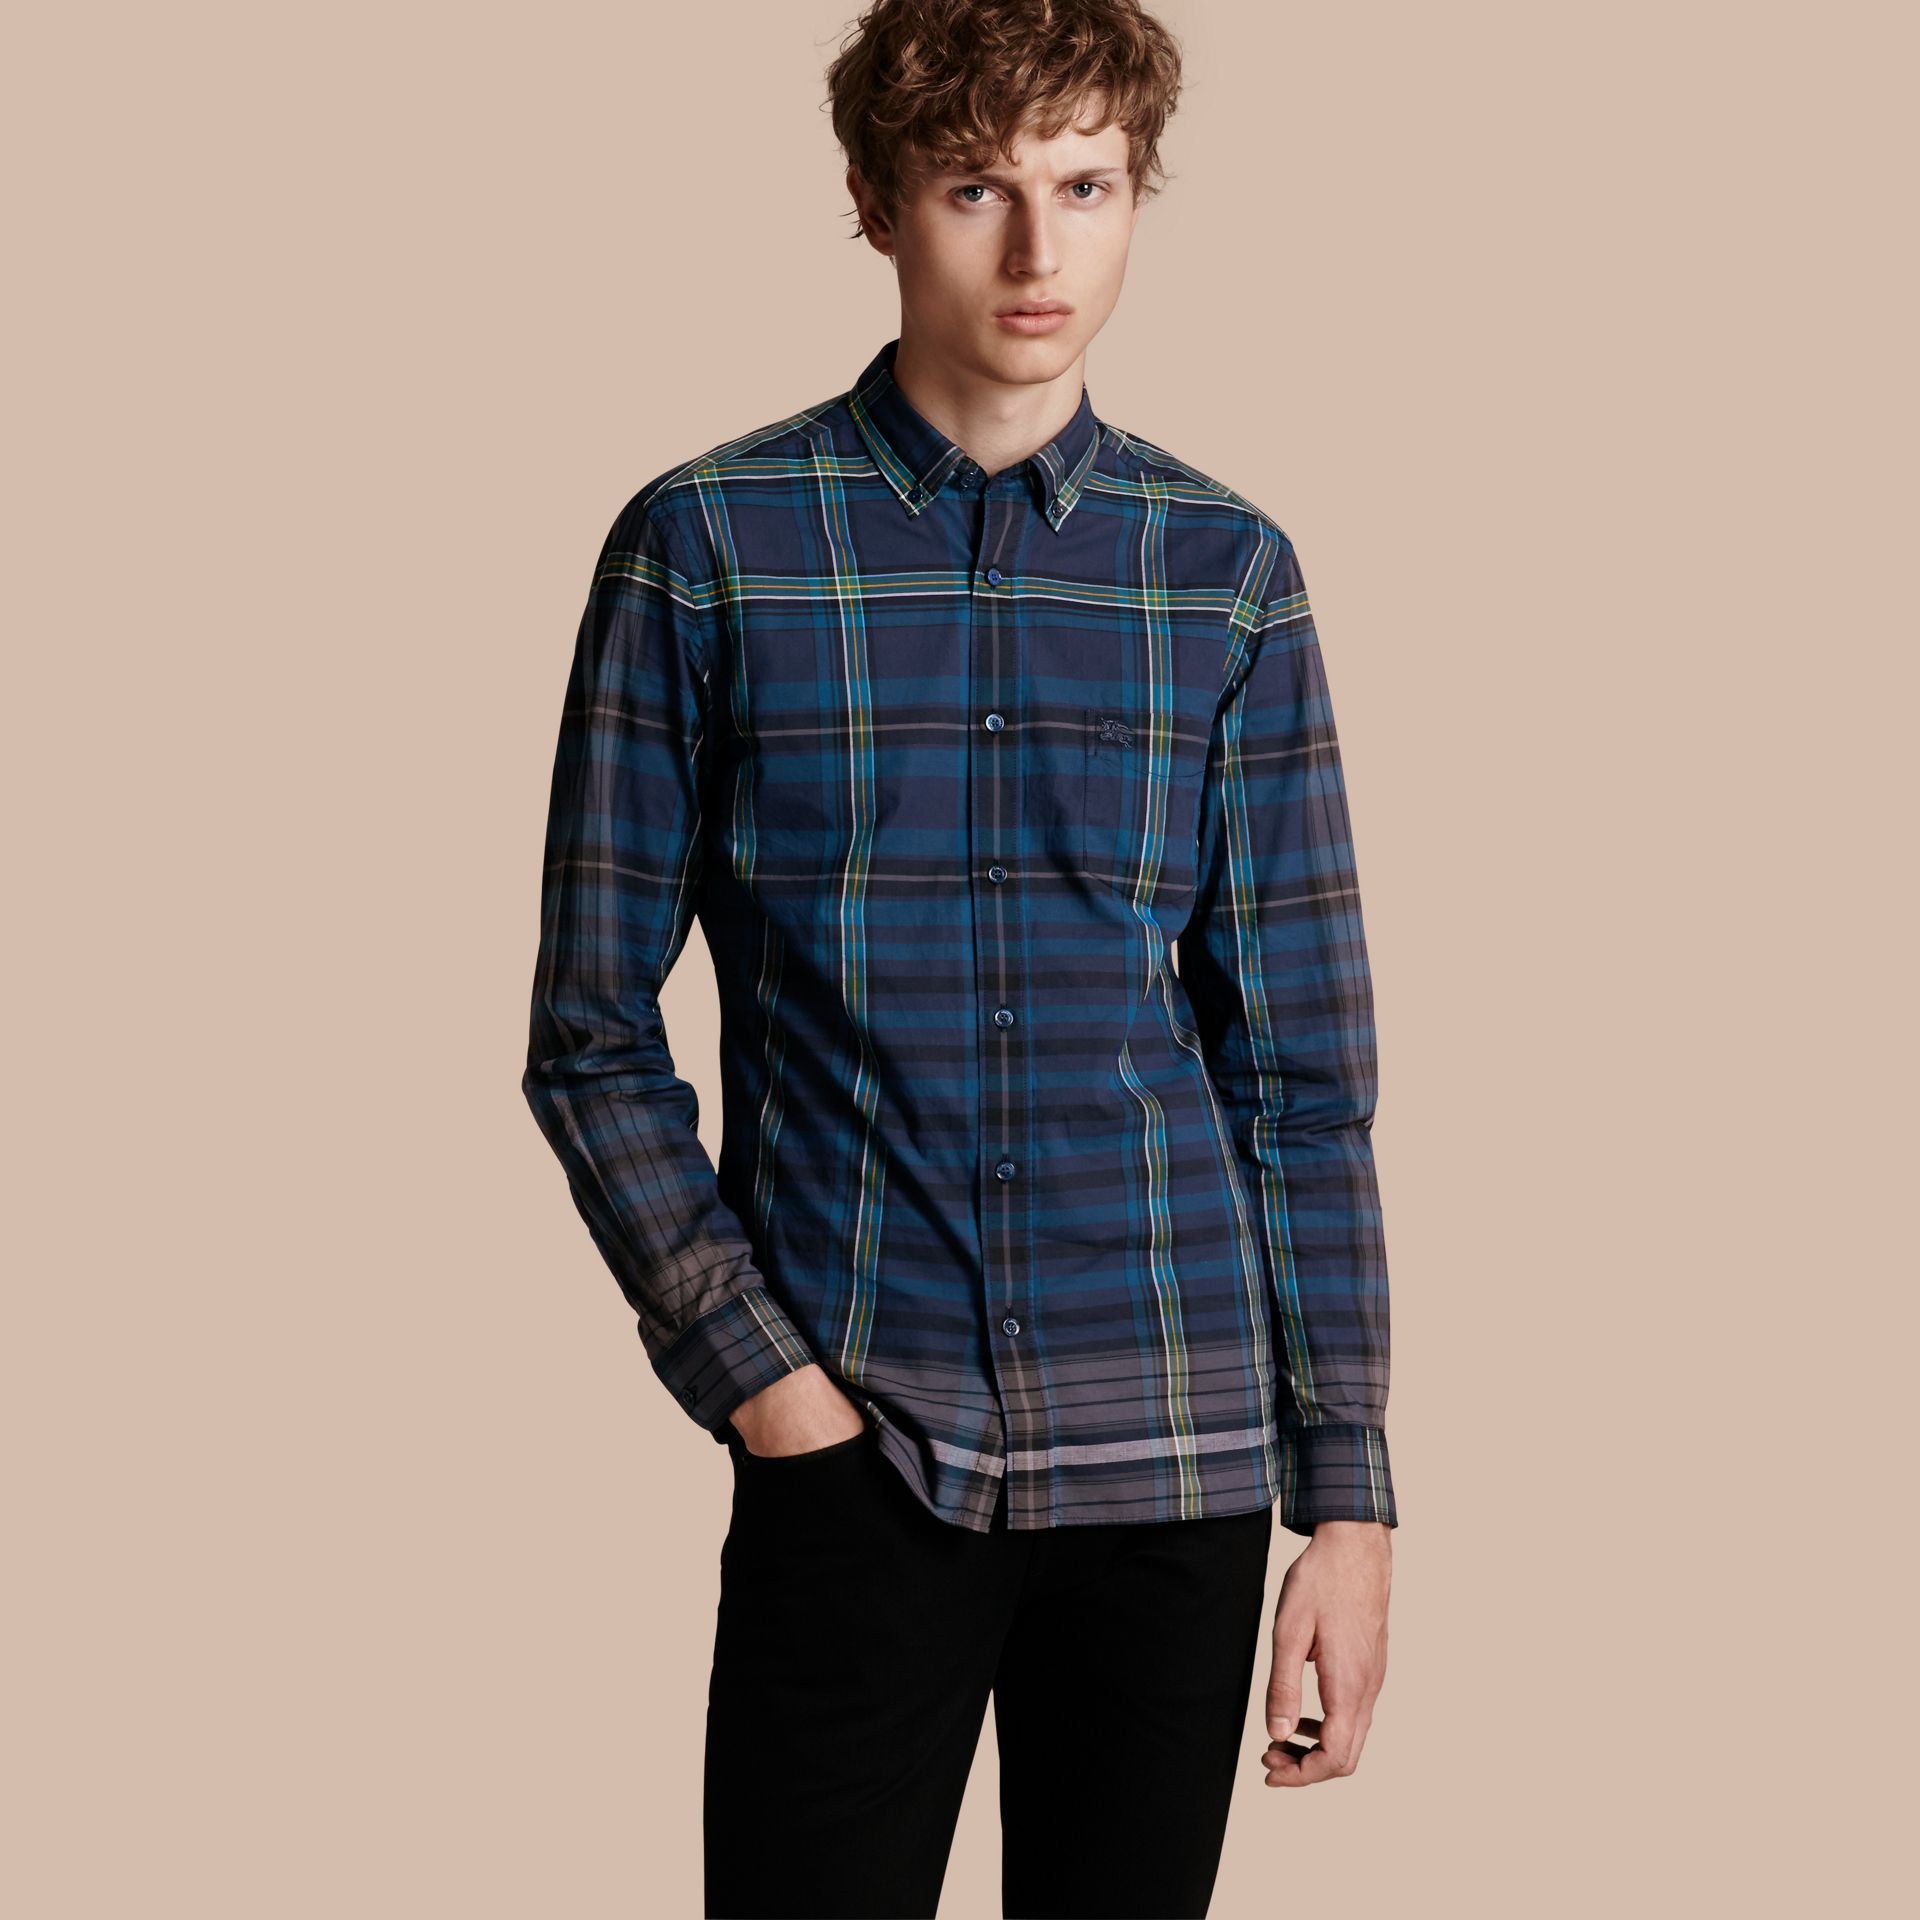 Indigo Button-down Collar Check Cotton Shirt Indigo - gallery image 1